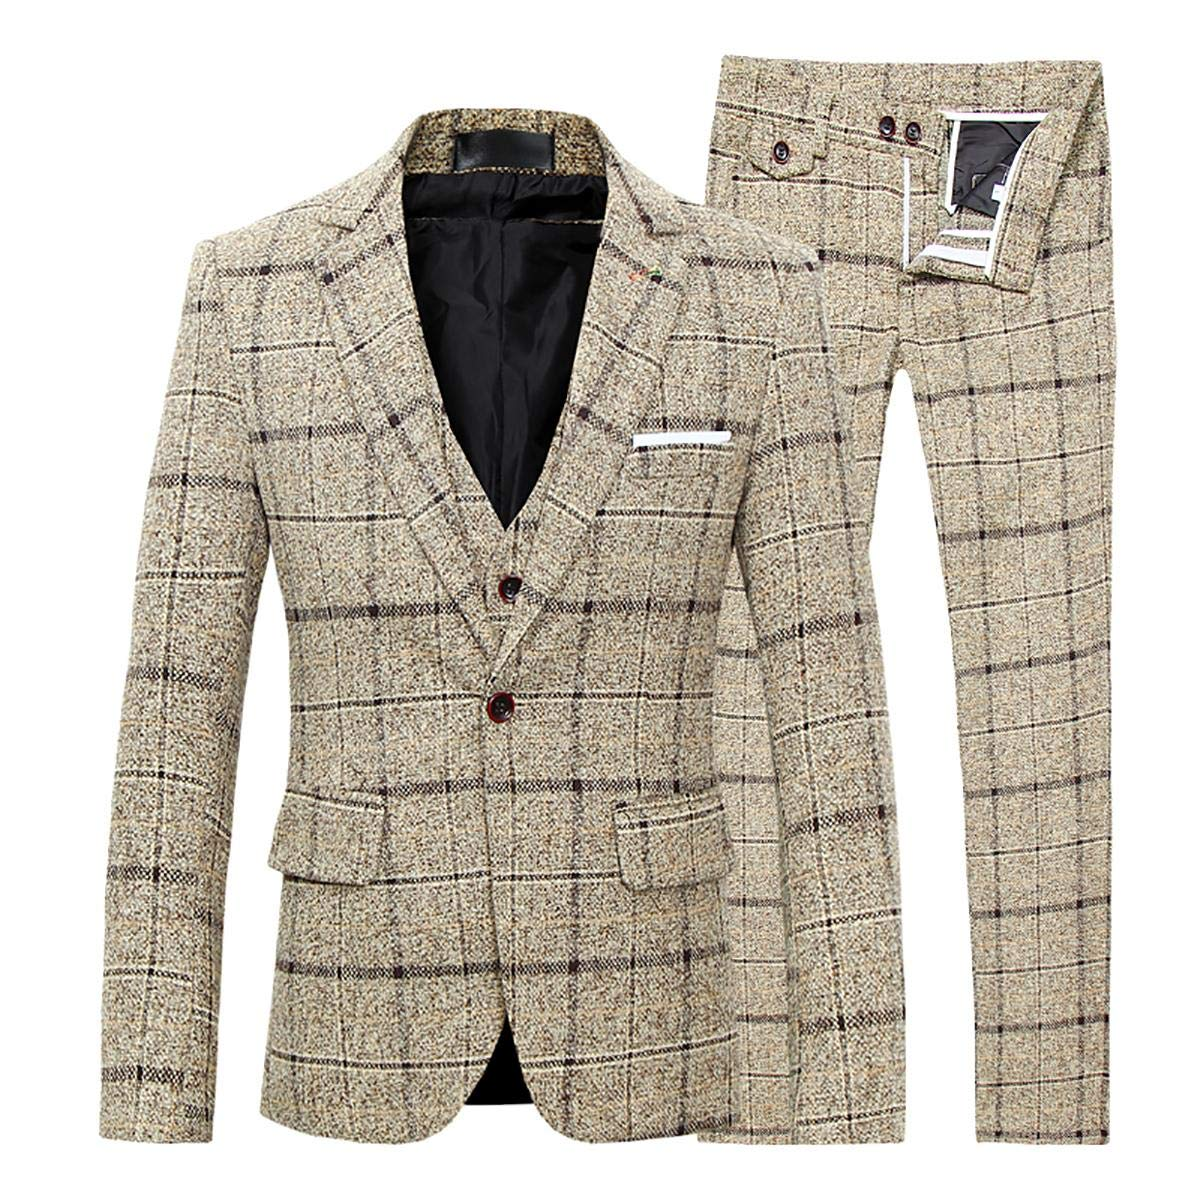 Men s Tweed Suits 3 Piece Slim Fit Plaid Suit Wedding Tuxedos Prom Party  Suit One-Button Herringbone Designer Check Vintage Blazer Jacket Waistcoat  Trousers ... f6ae3f27e74